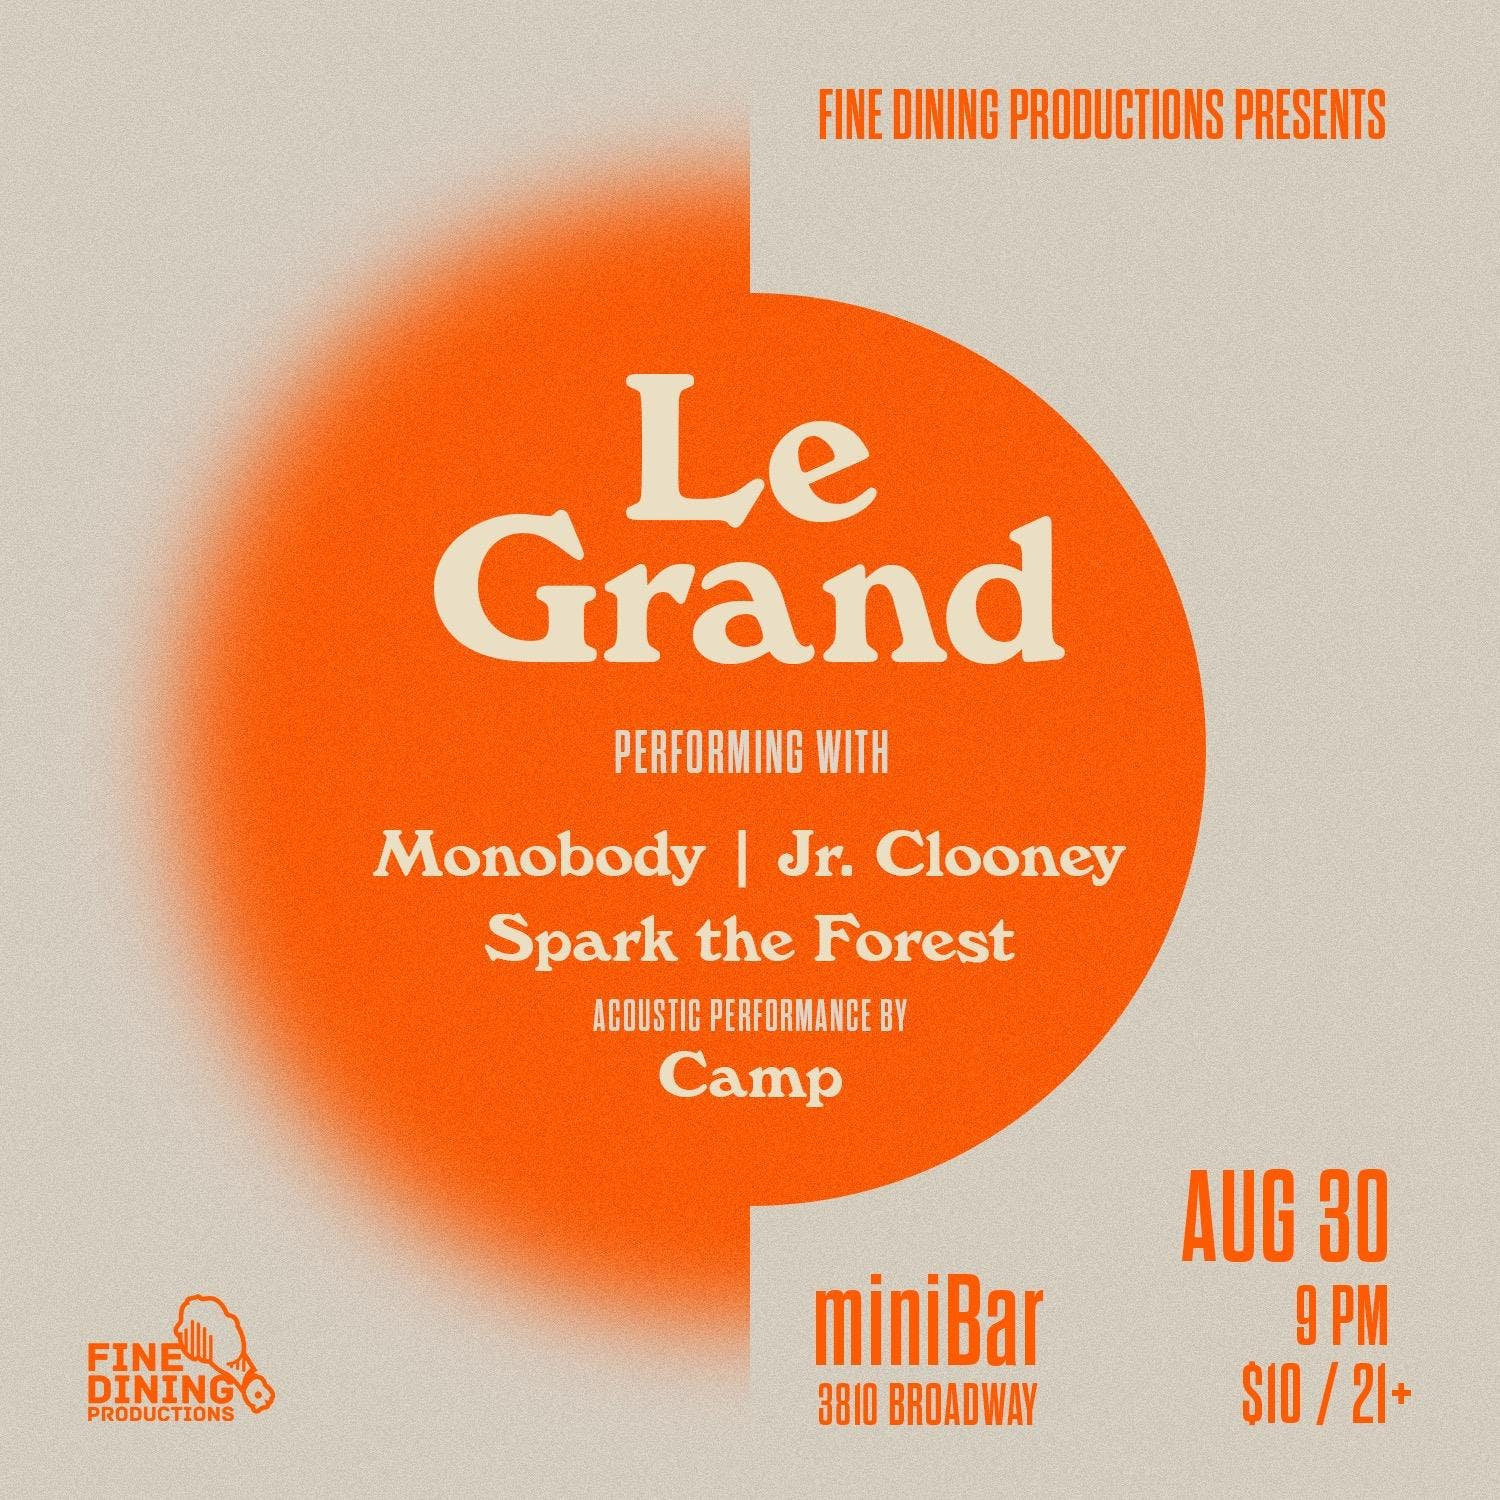 LE GRAND, MONOBODY, JR. CLOONEY, SPARK  THE FOREST, CAMP